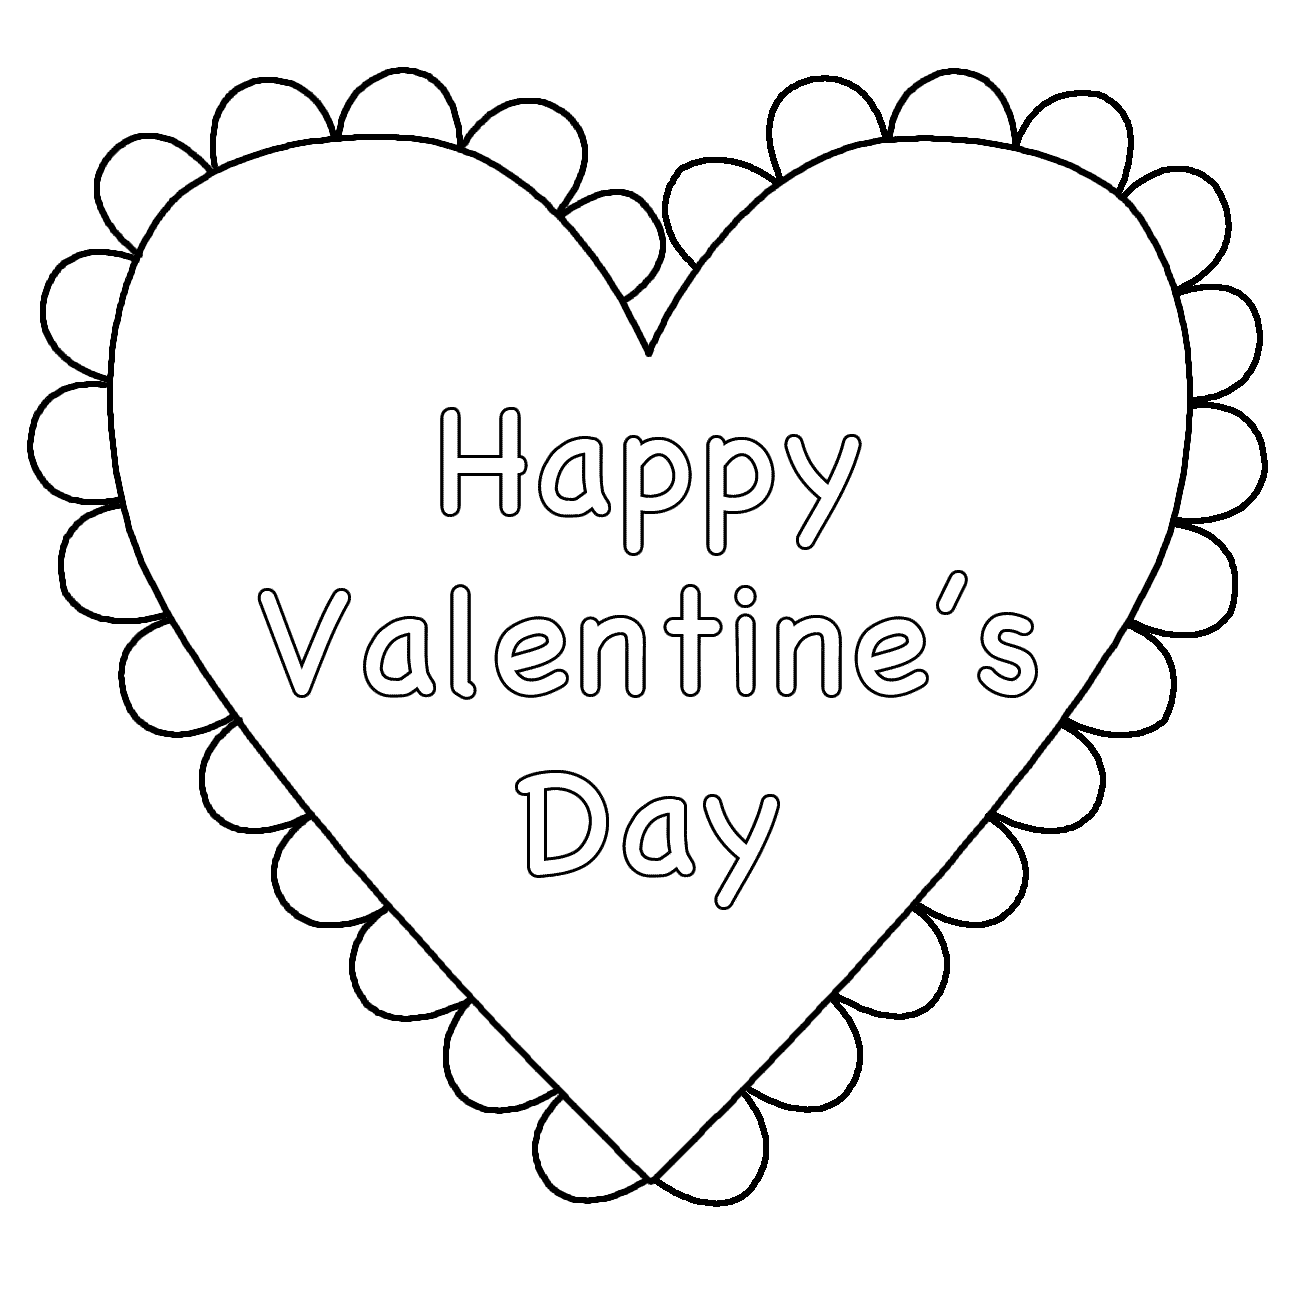 Heart (Happy Valentine's Day) - Coloring Page (Valentine's Day)